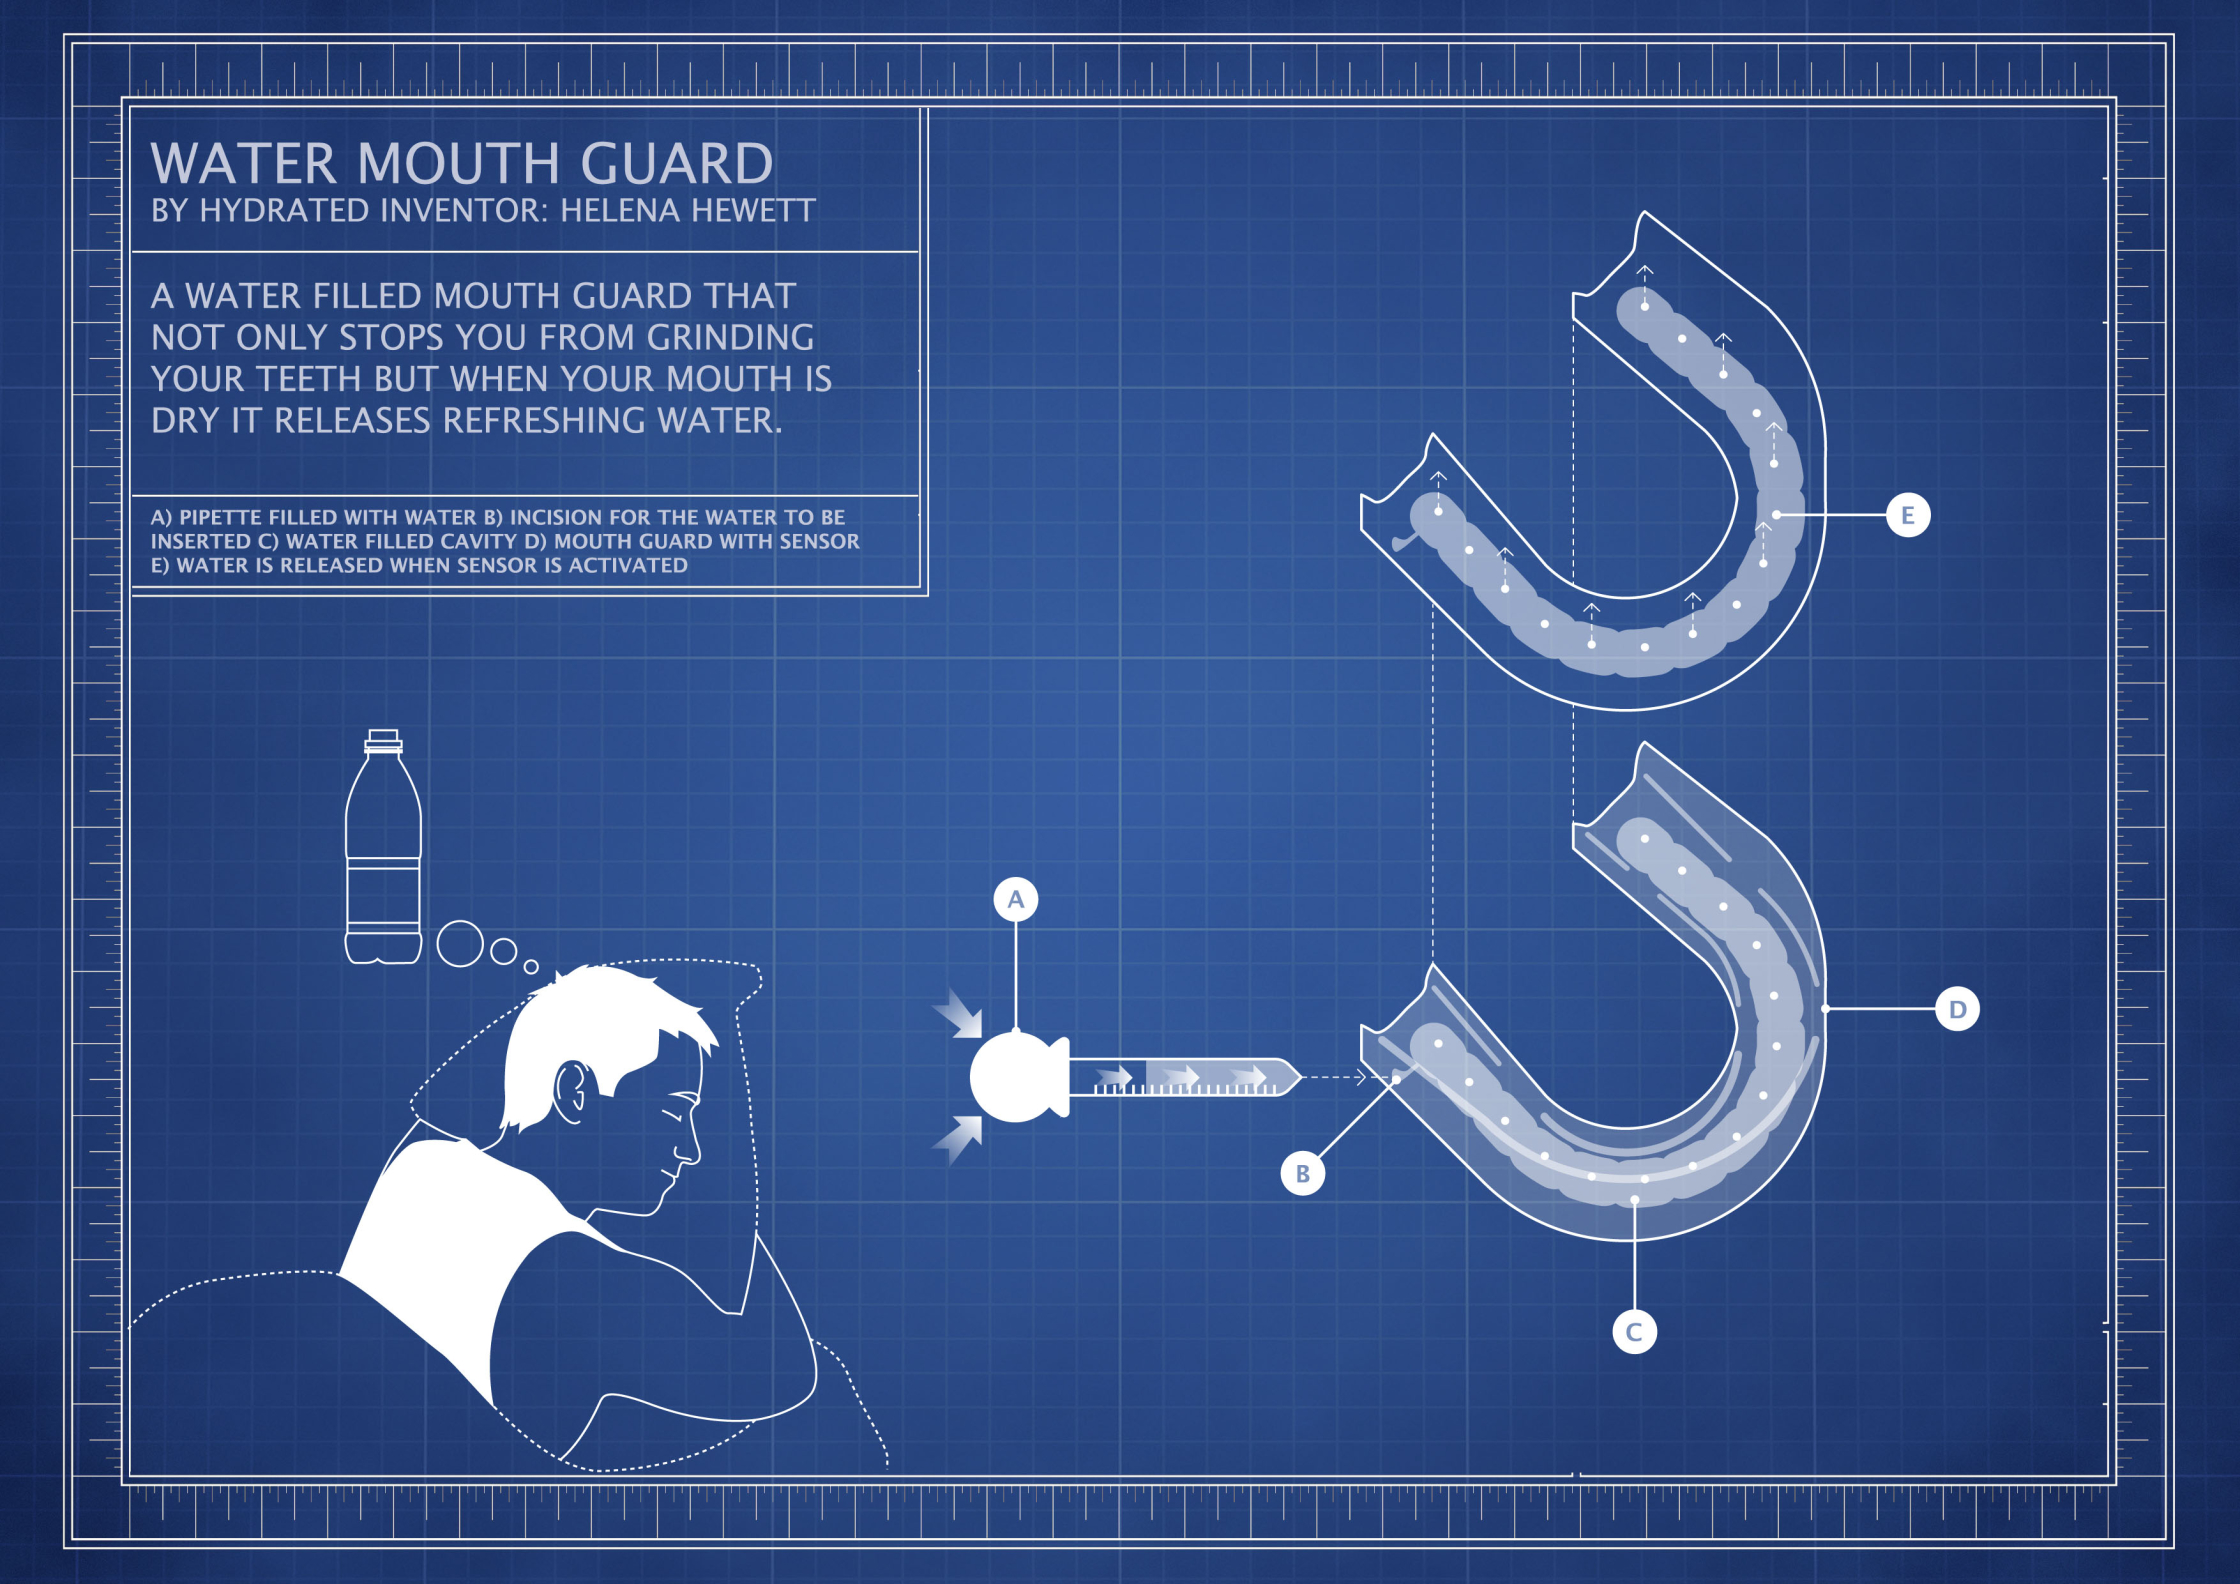 Drench Water Mouth Guard By Helena Hewett